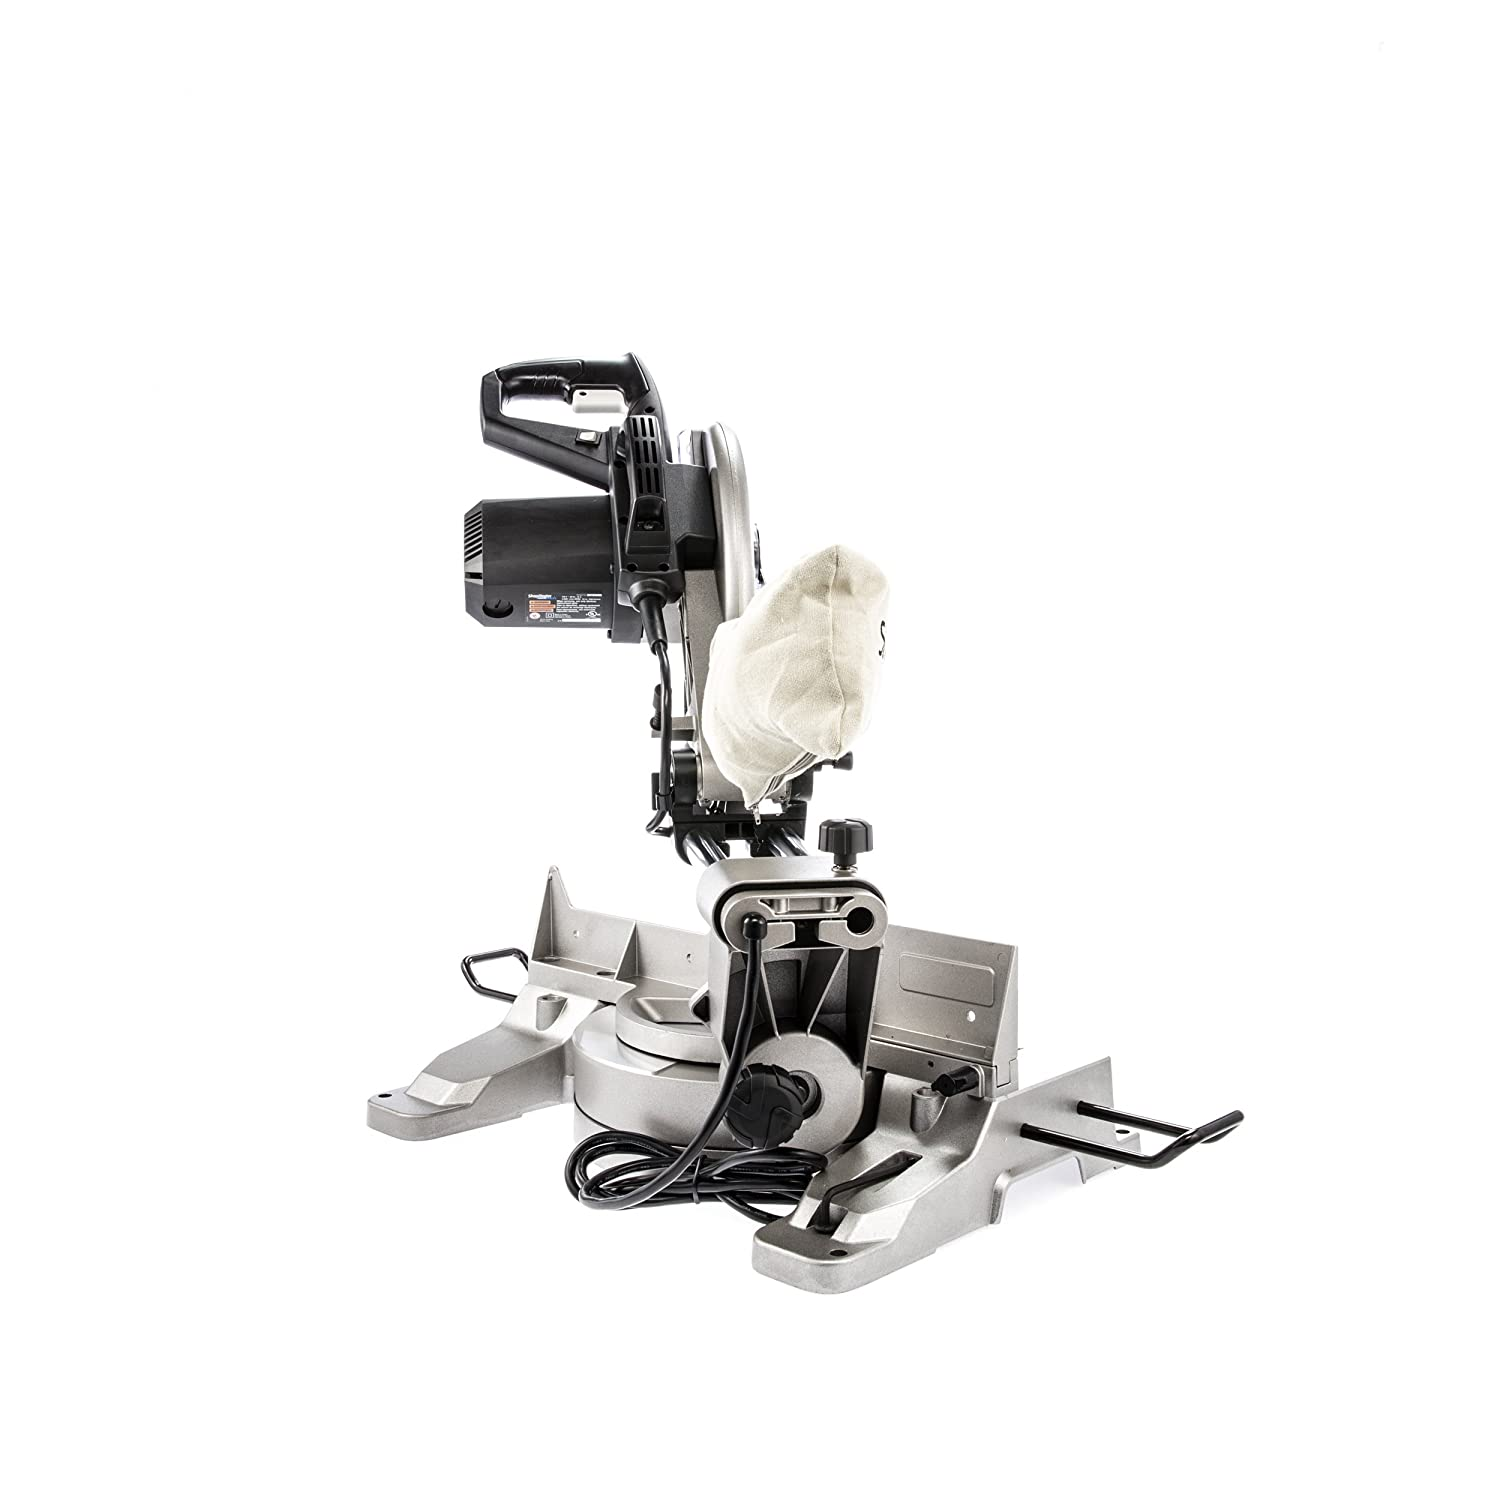 Delta S26-271L 12 Sliding Single Bevel Miter Saw With Laser, Silver